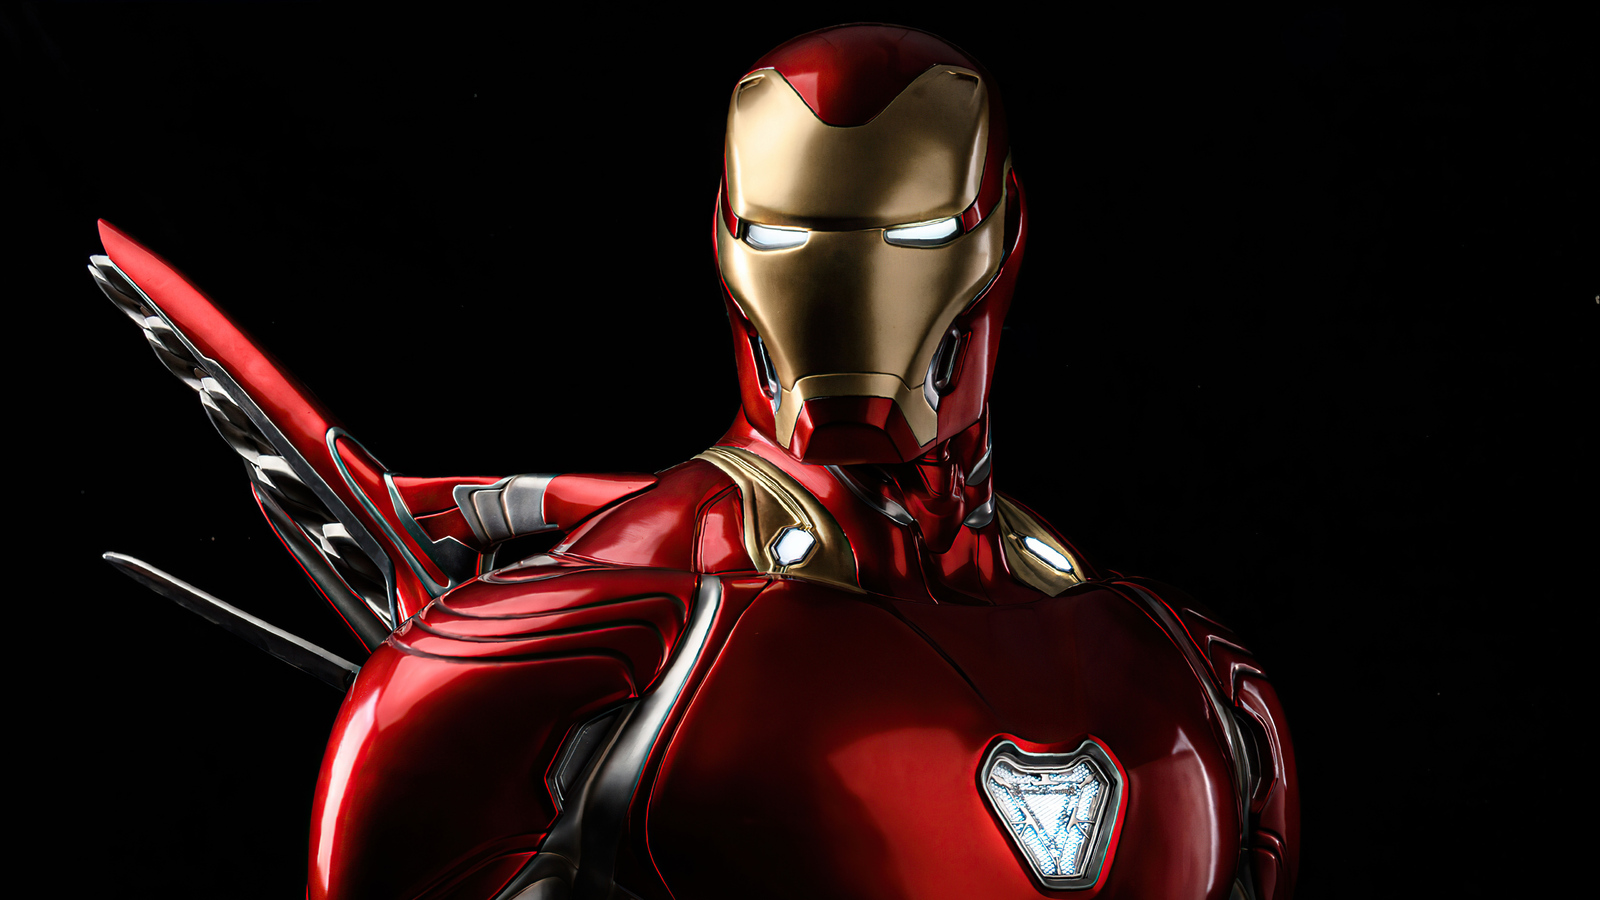 iron-man-glowing-eyes-4k-mi.jpg